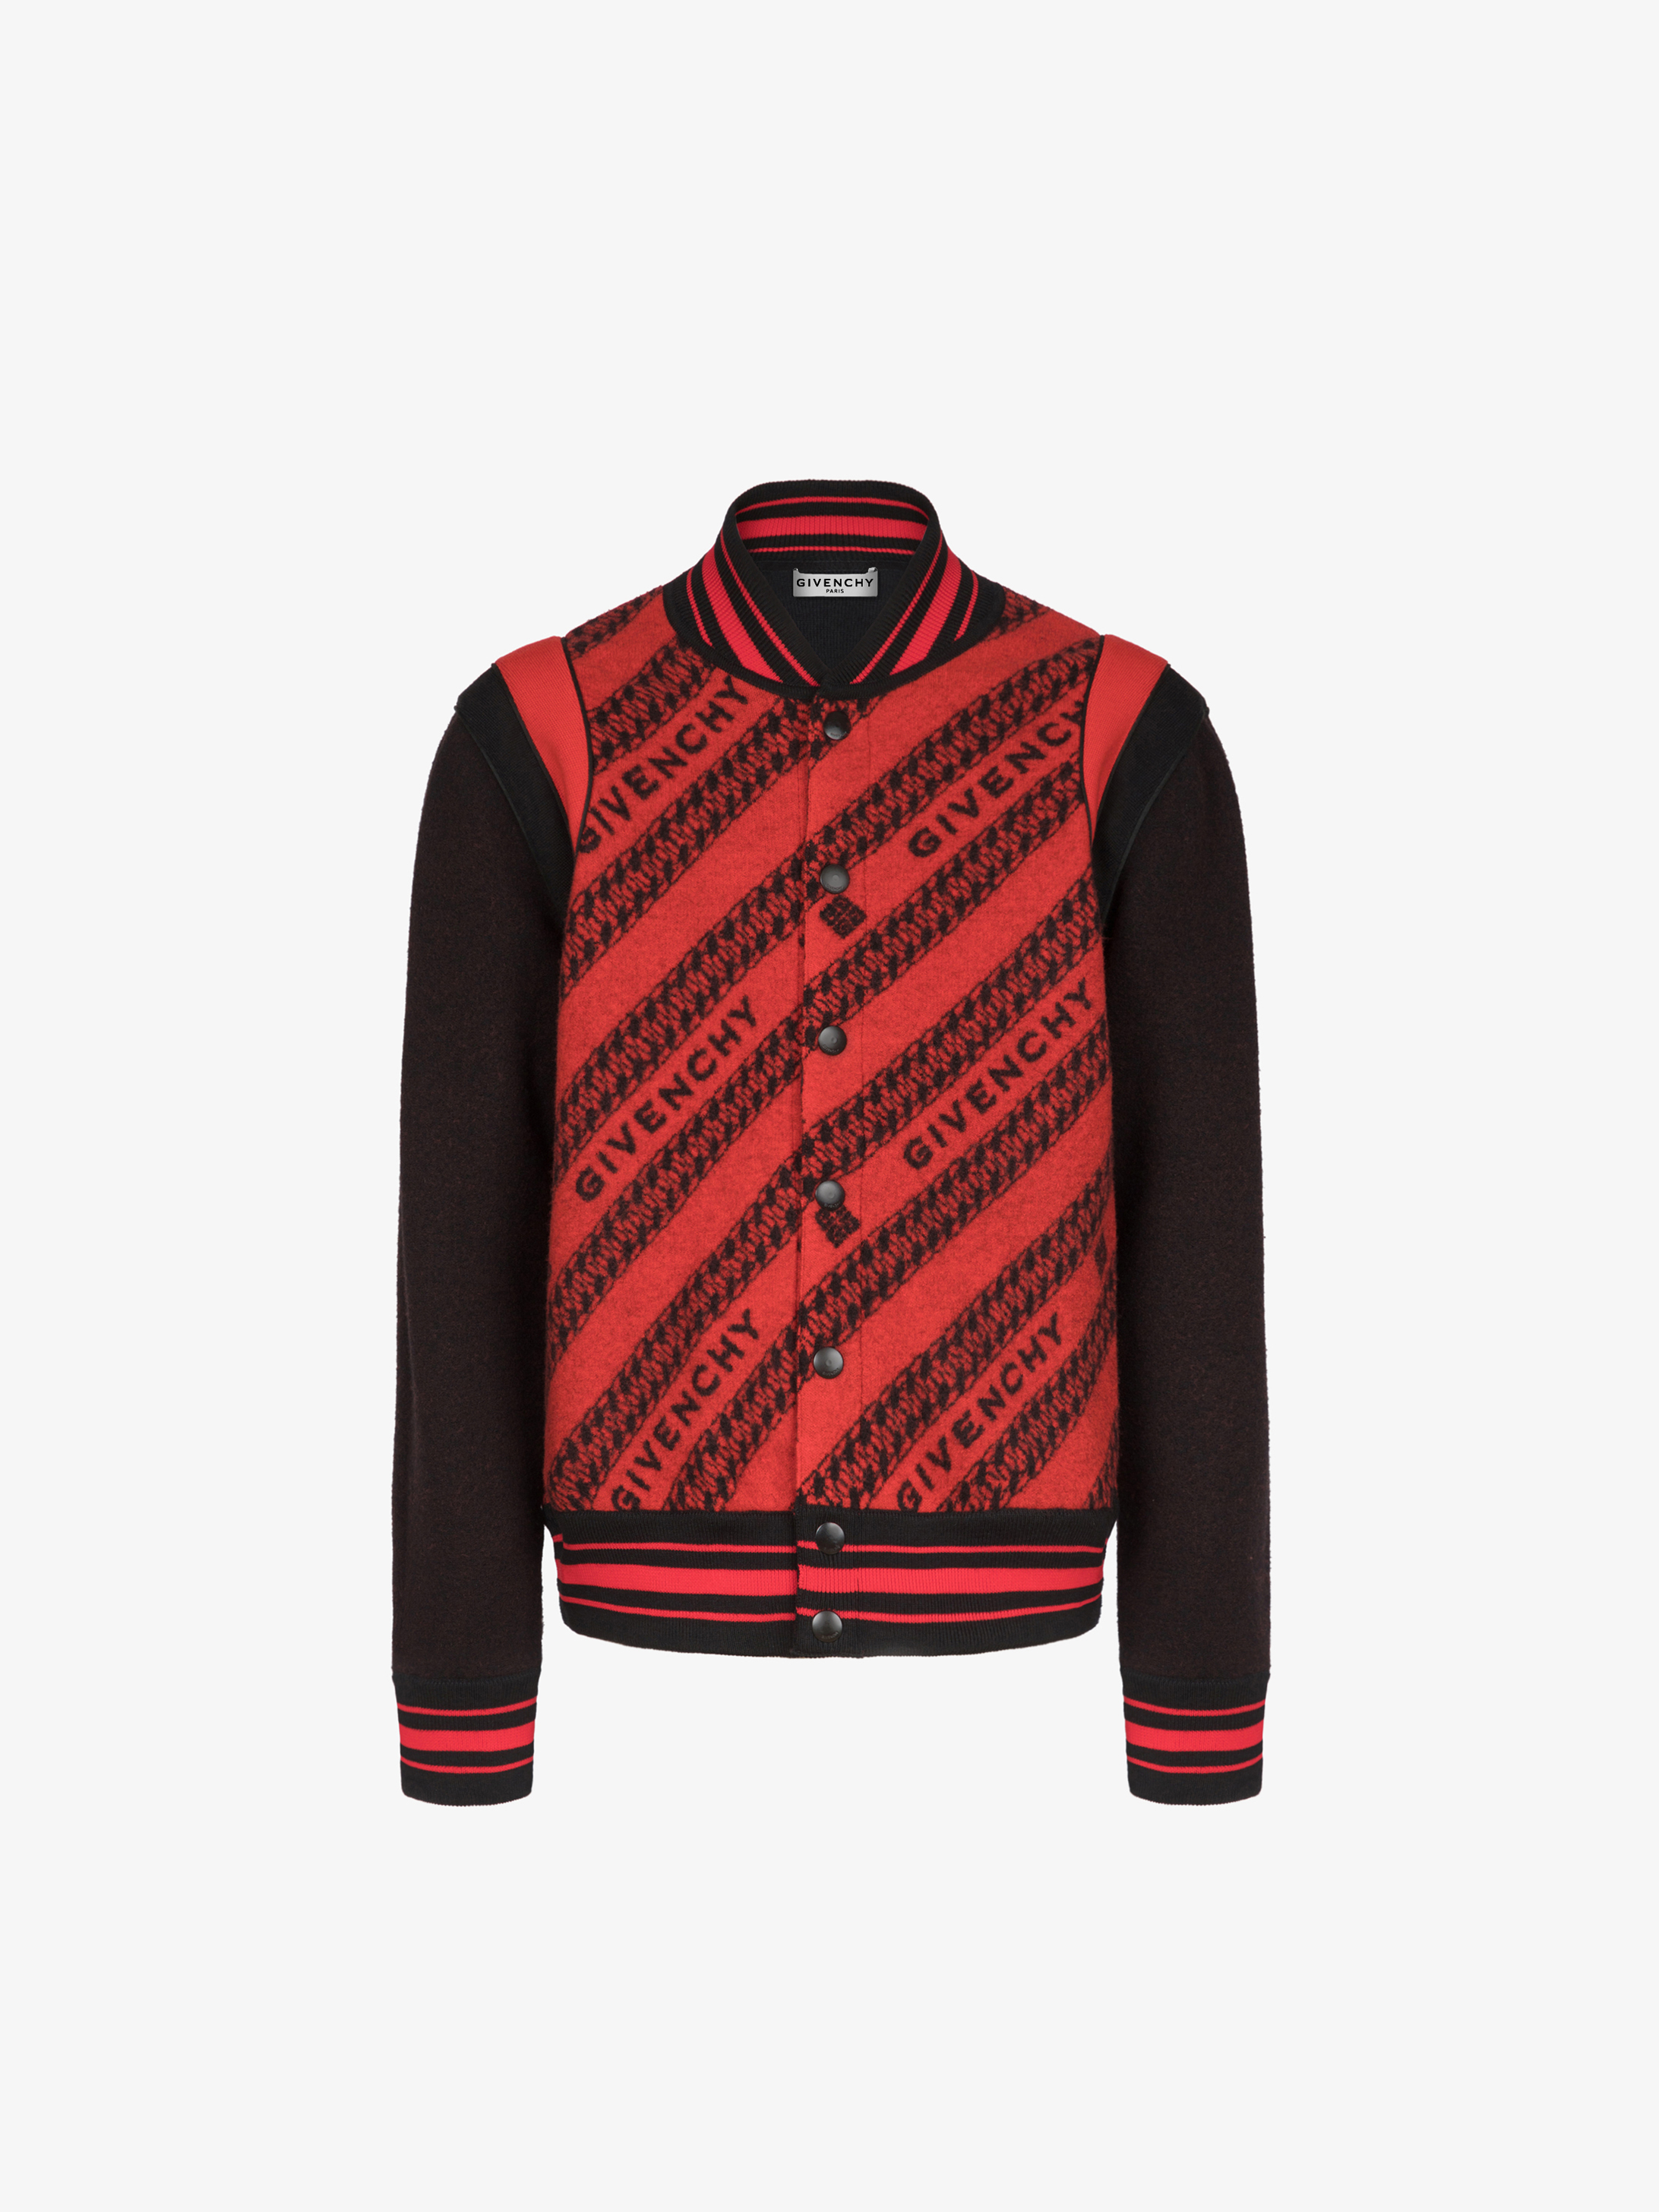 GIVENCHY chain bomber in jacquard